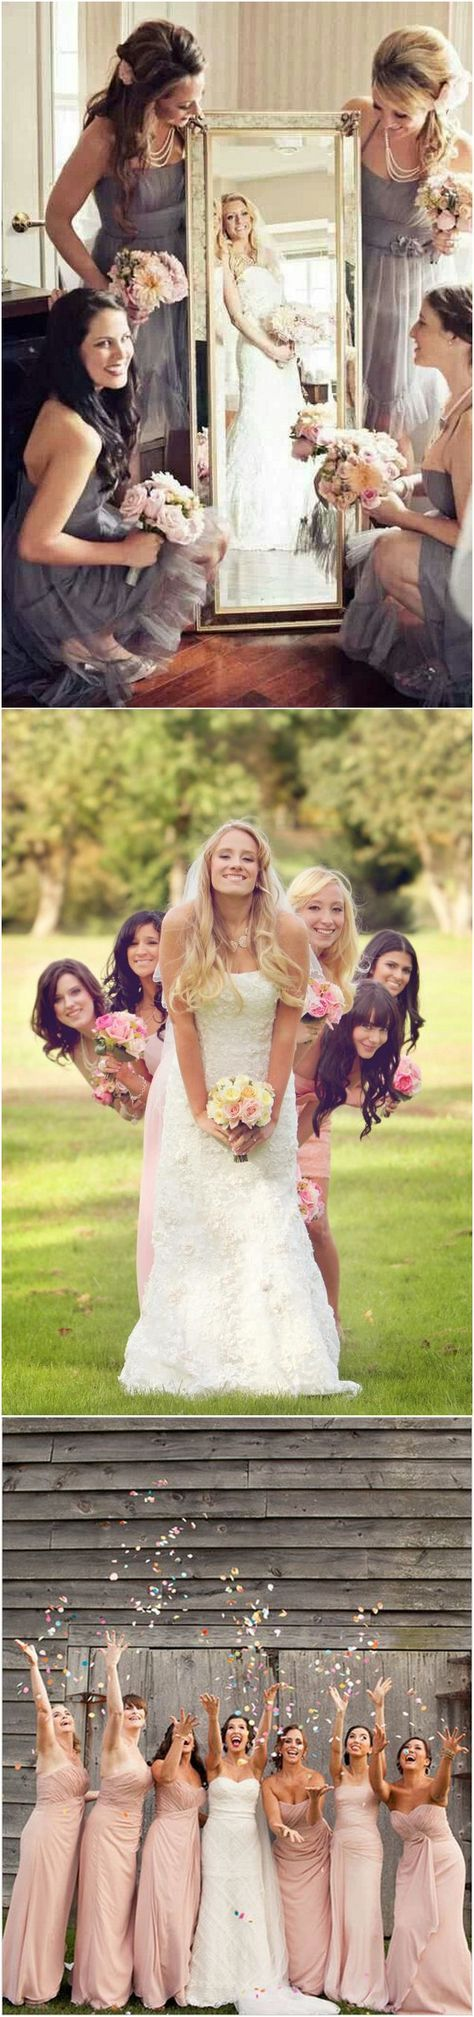 unusual wedding photos ideas%0A    Must Have Wedding Photo Ideas with Your Bridesmaids  Page   of